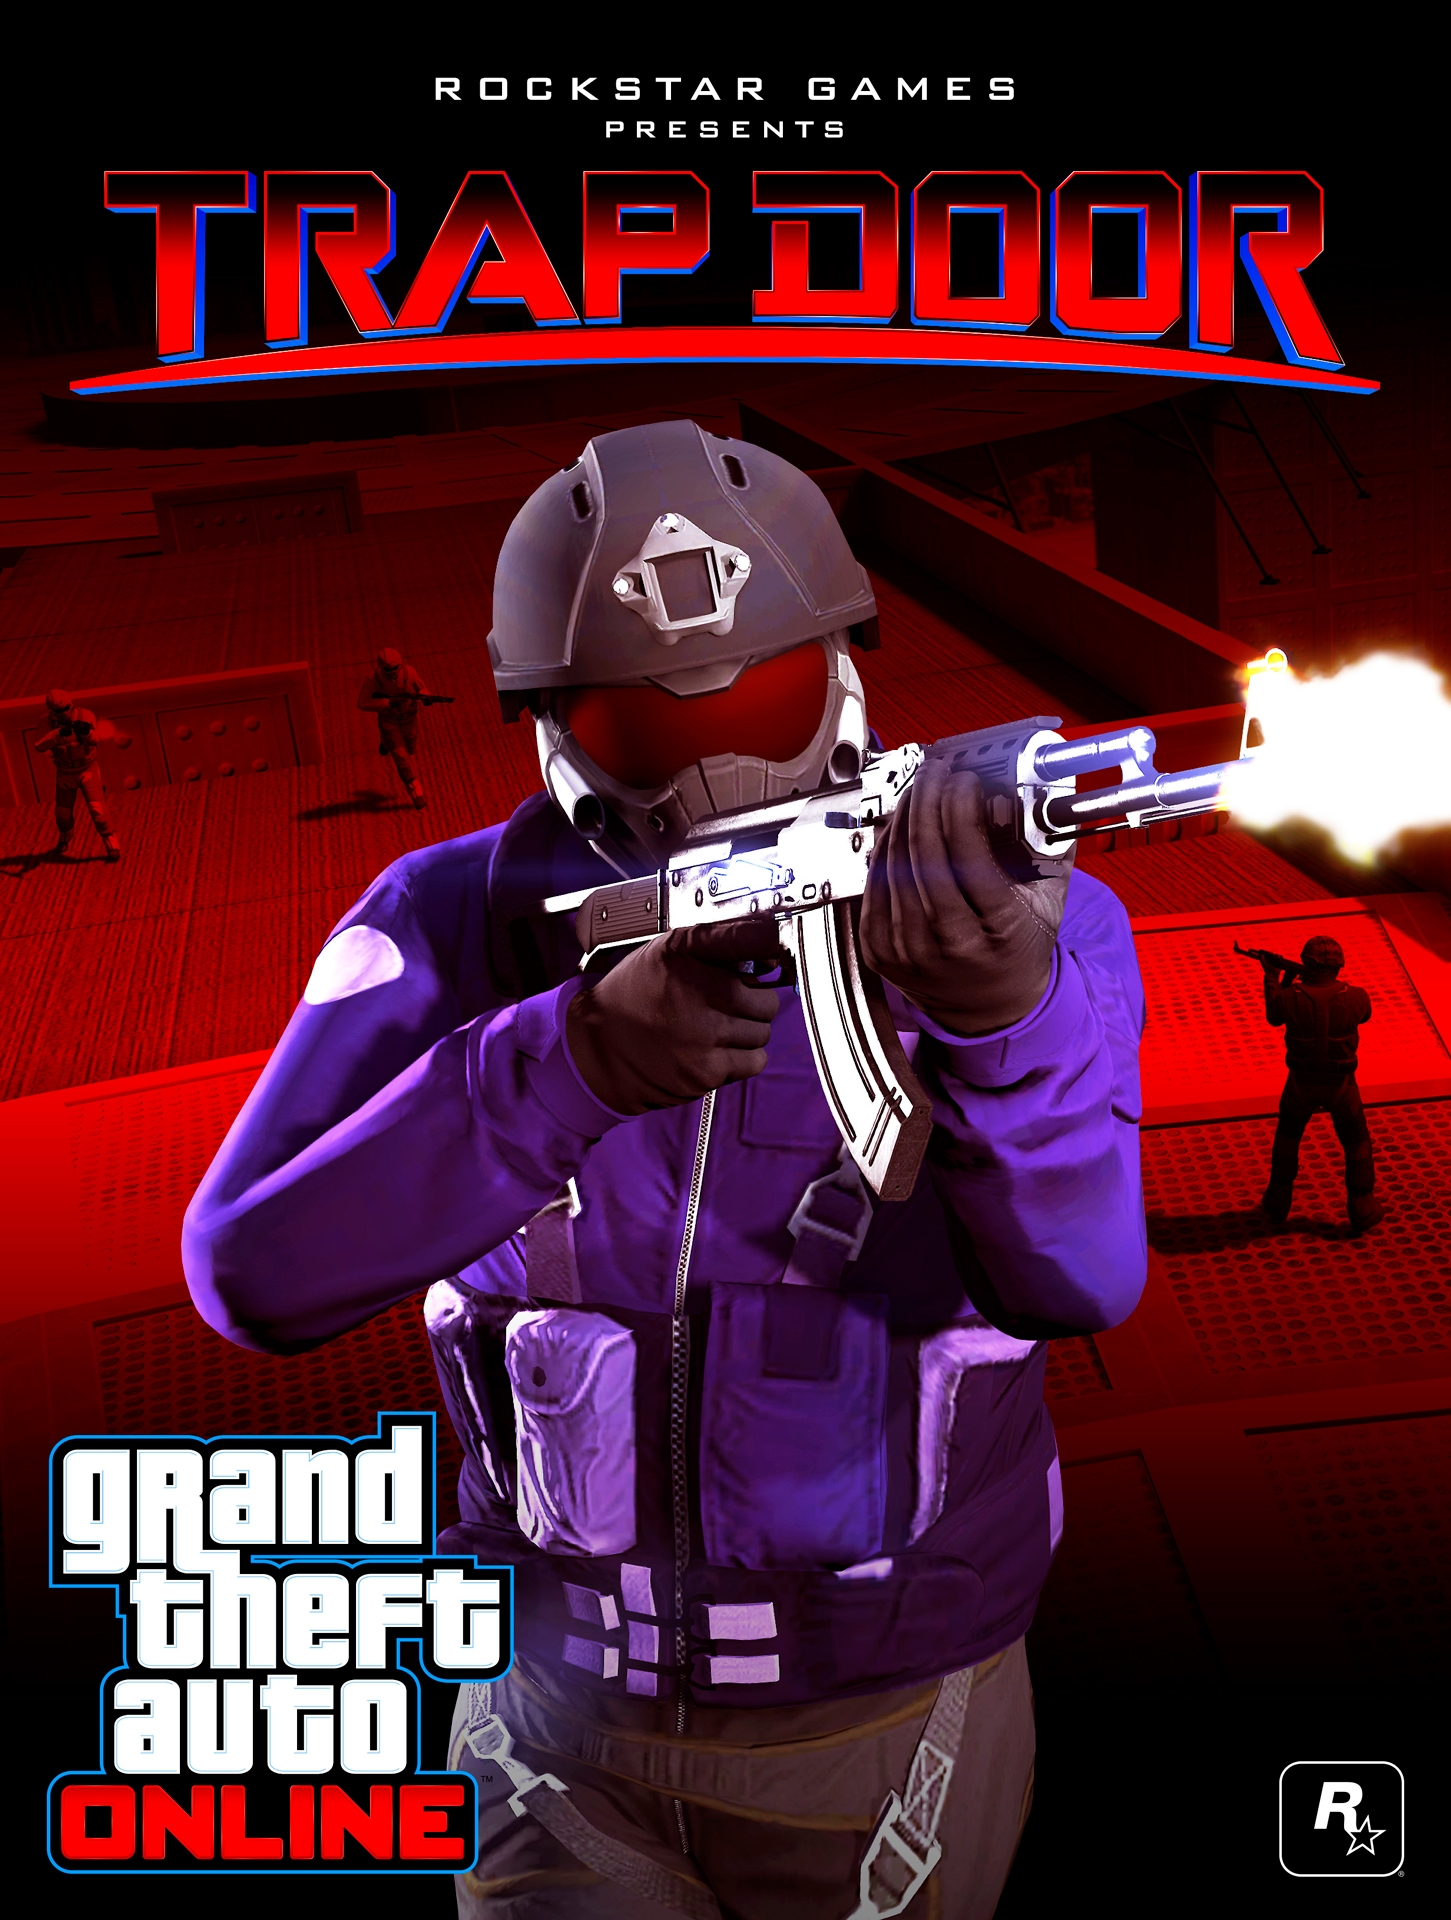 Gta Online Trap Door Rockstar Games